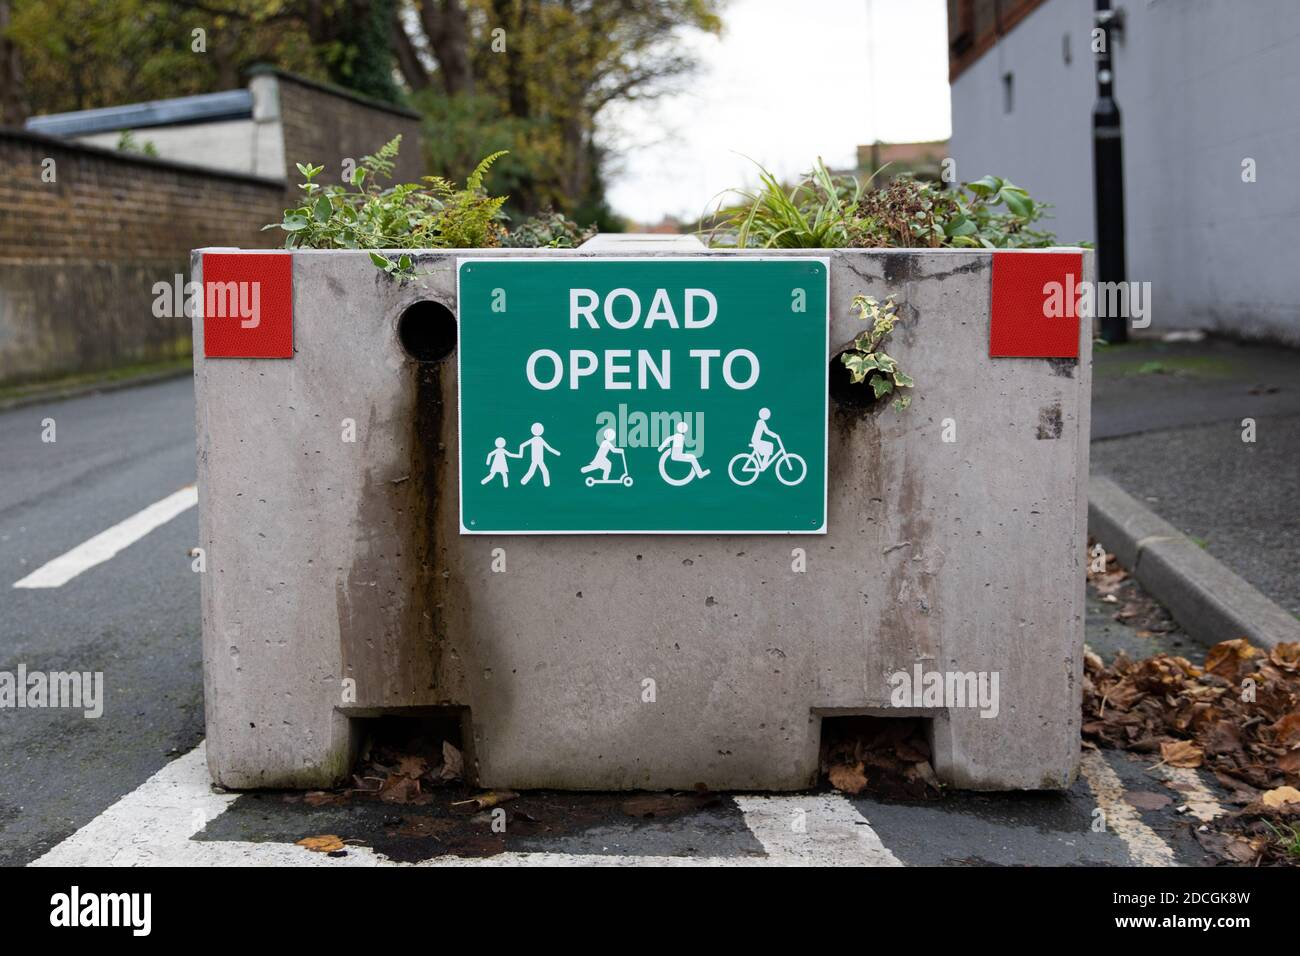 Concrete planter closing a road to motor vehicles allowing pedestrians and cyclists. Stock Photo